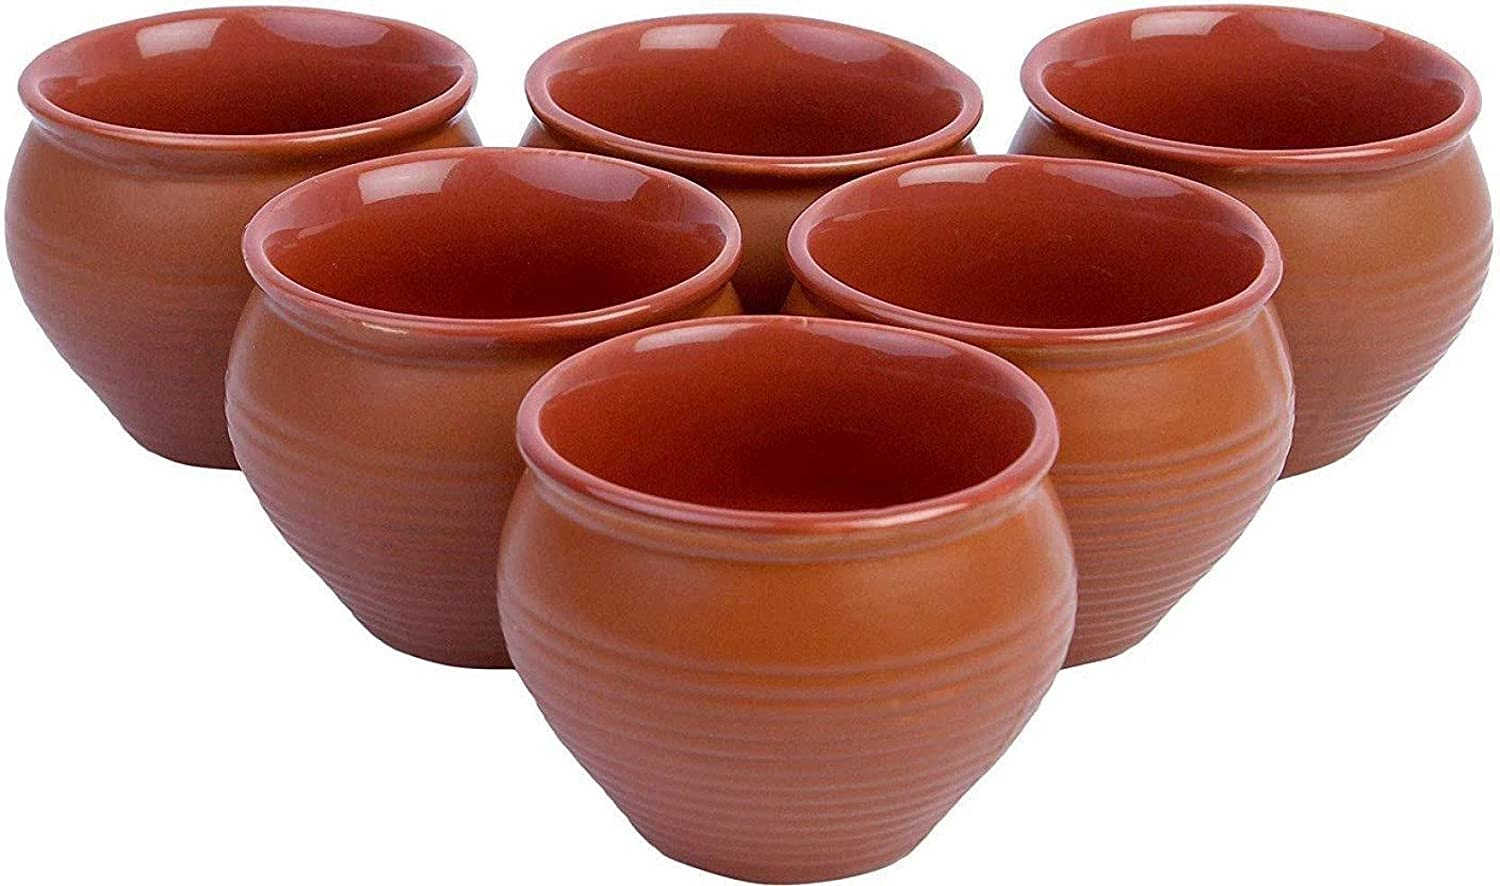 Creativegifts Ceramic Kulhar Cups Reusable Traditional Indian Chai Tea Cup (Set of 6. 100 ml each)